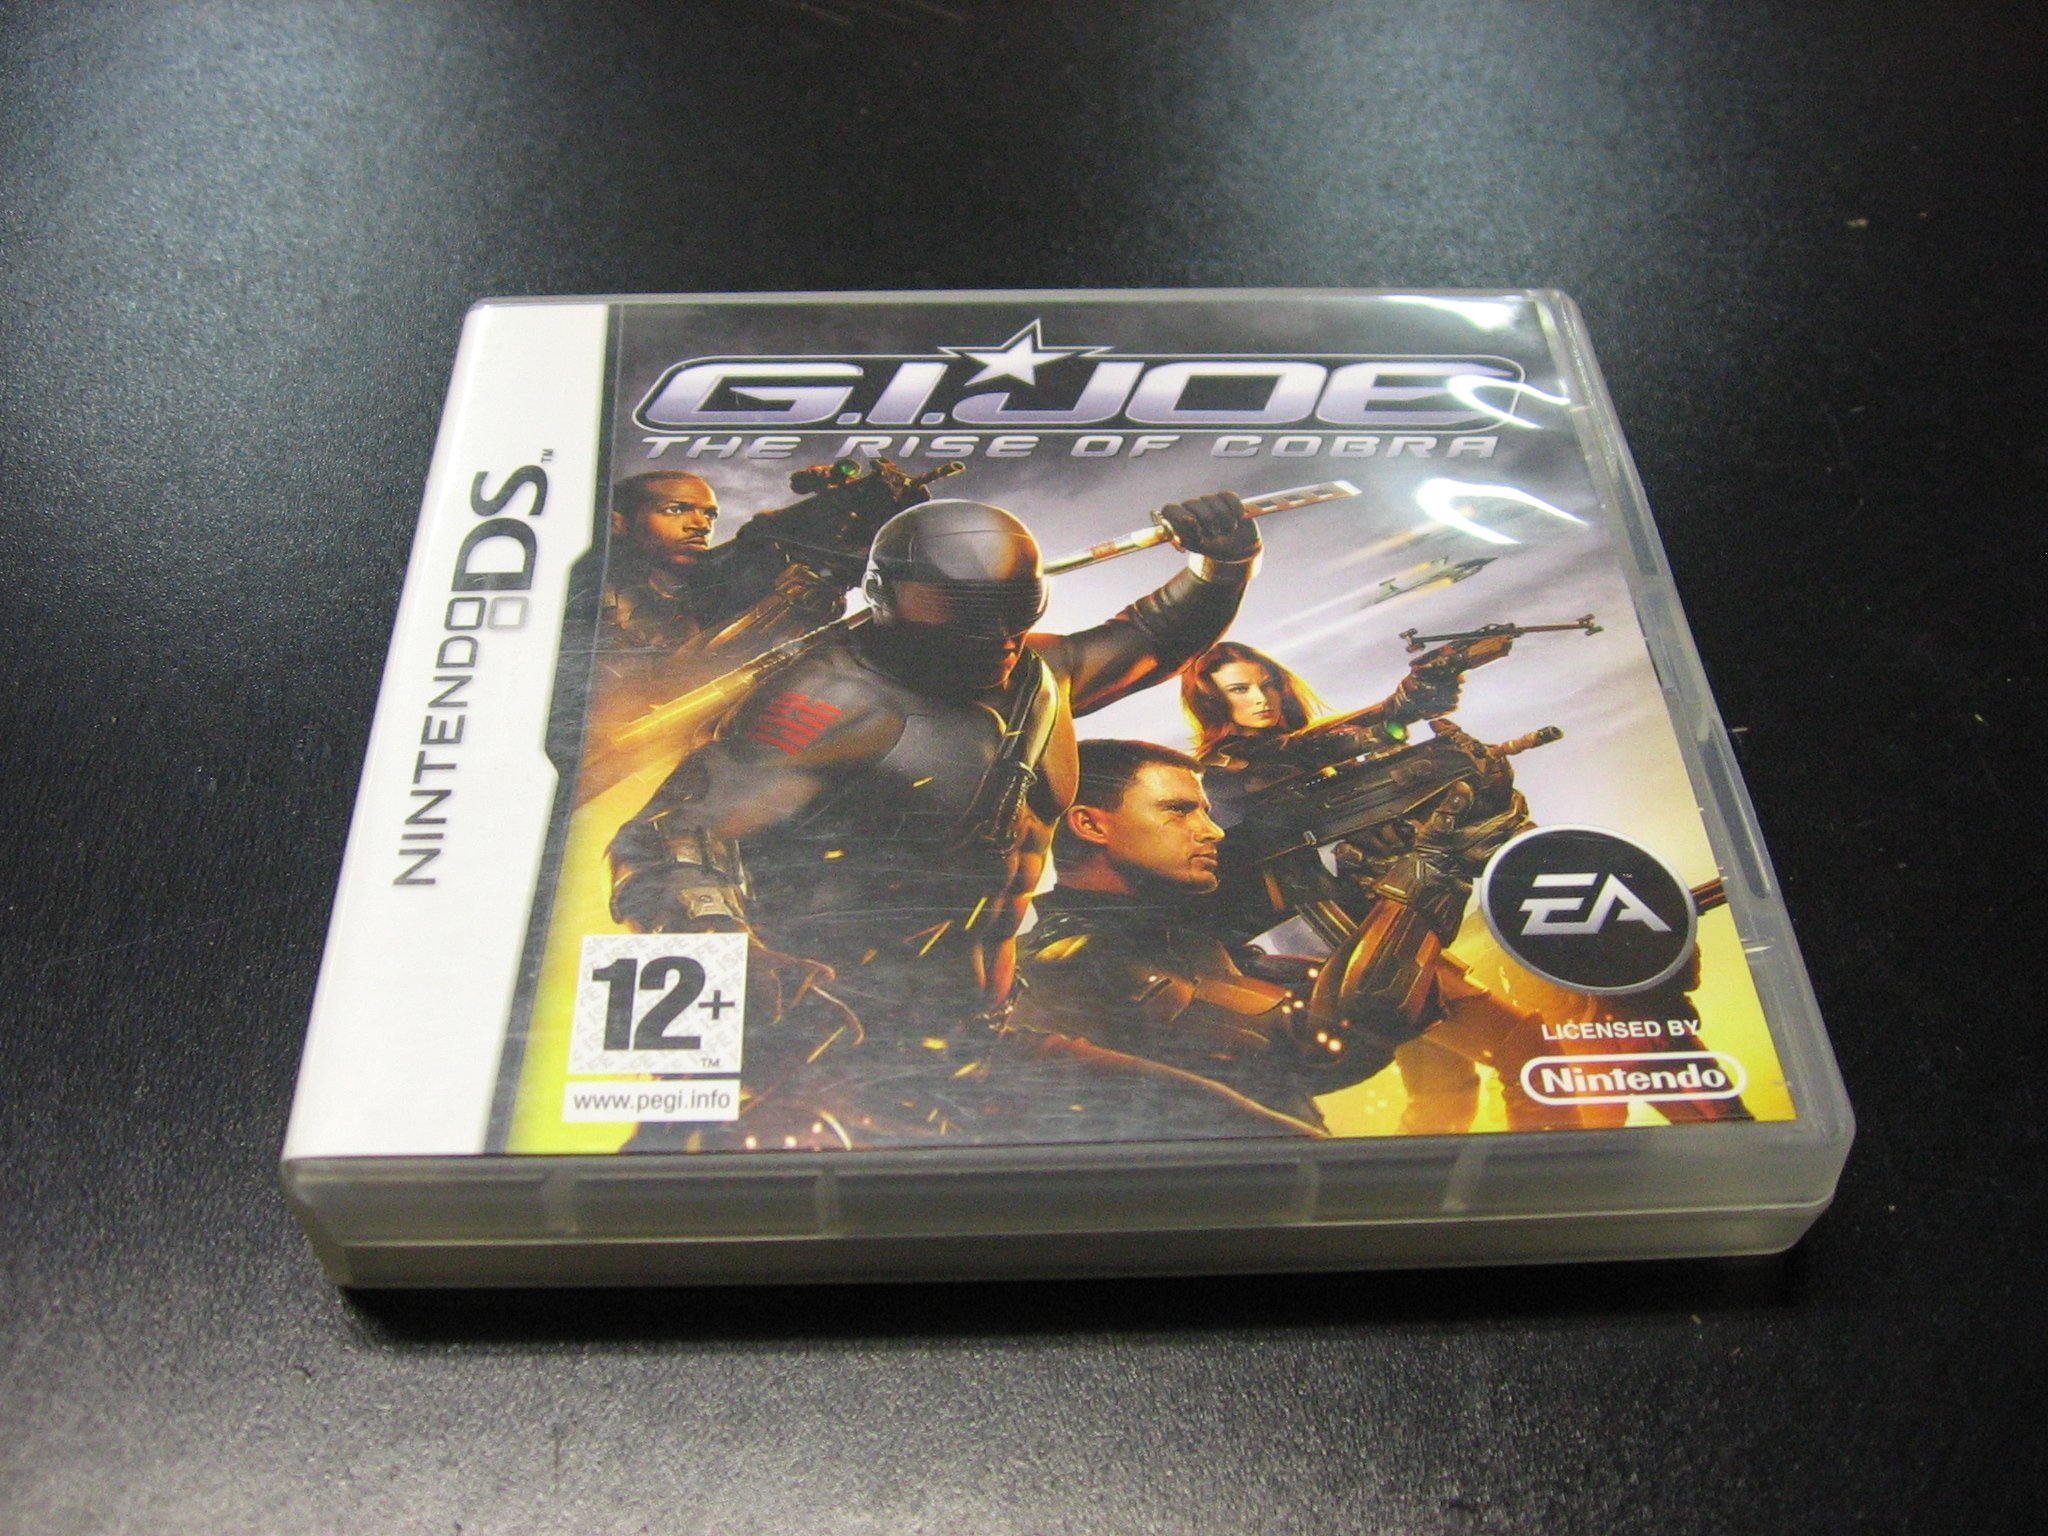 G.I. JOE RISE OF COBRA - NINTENDO DS - Opole